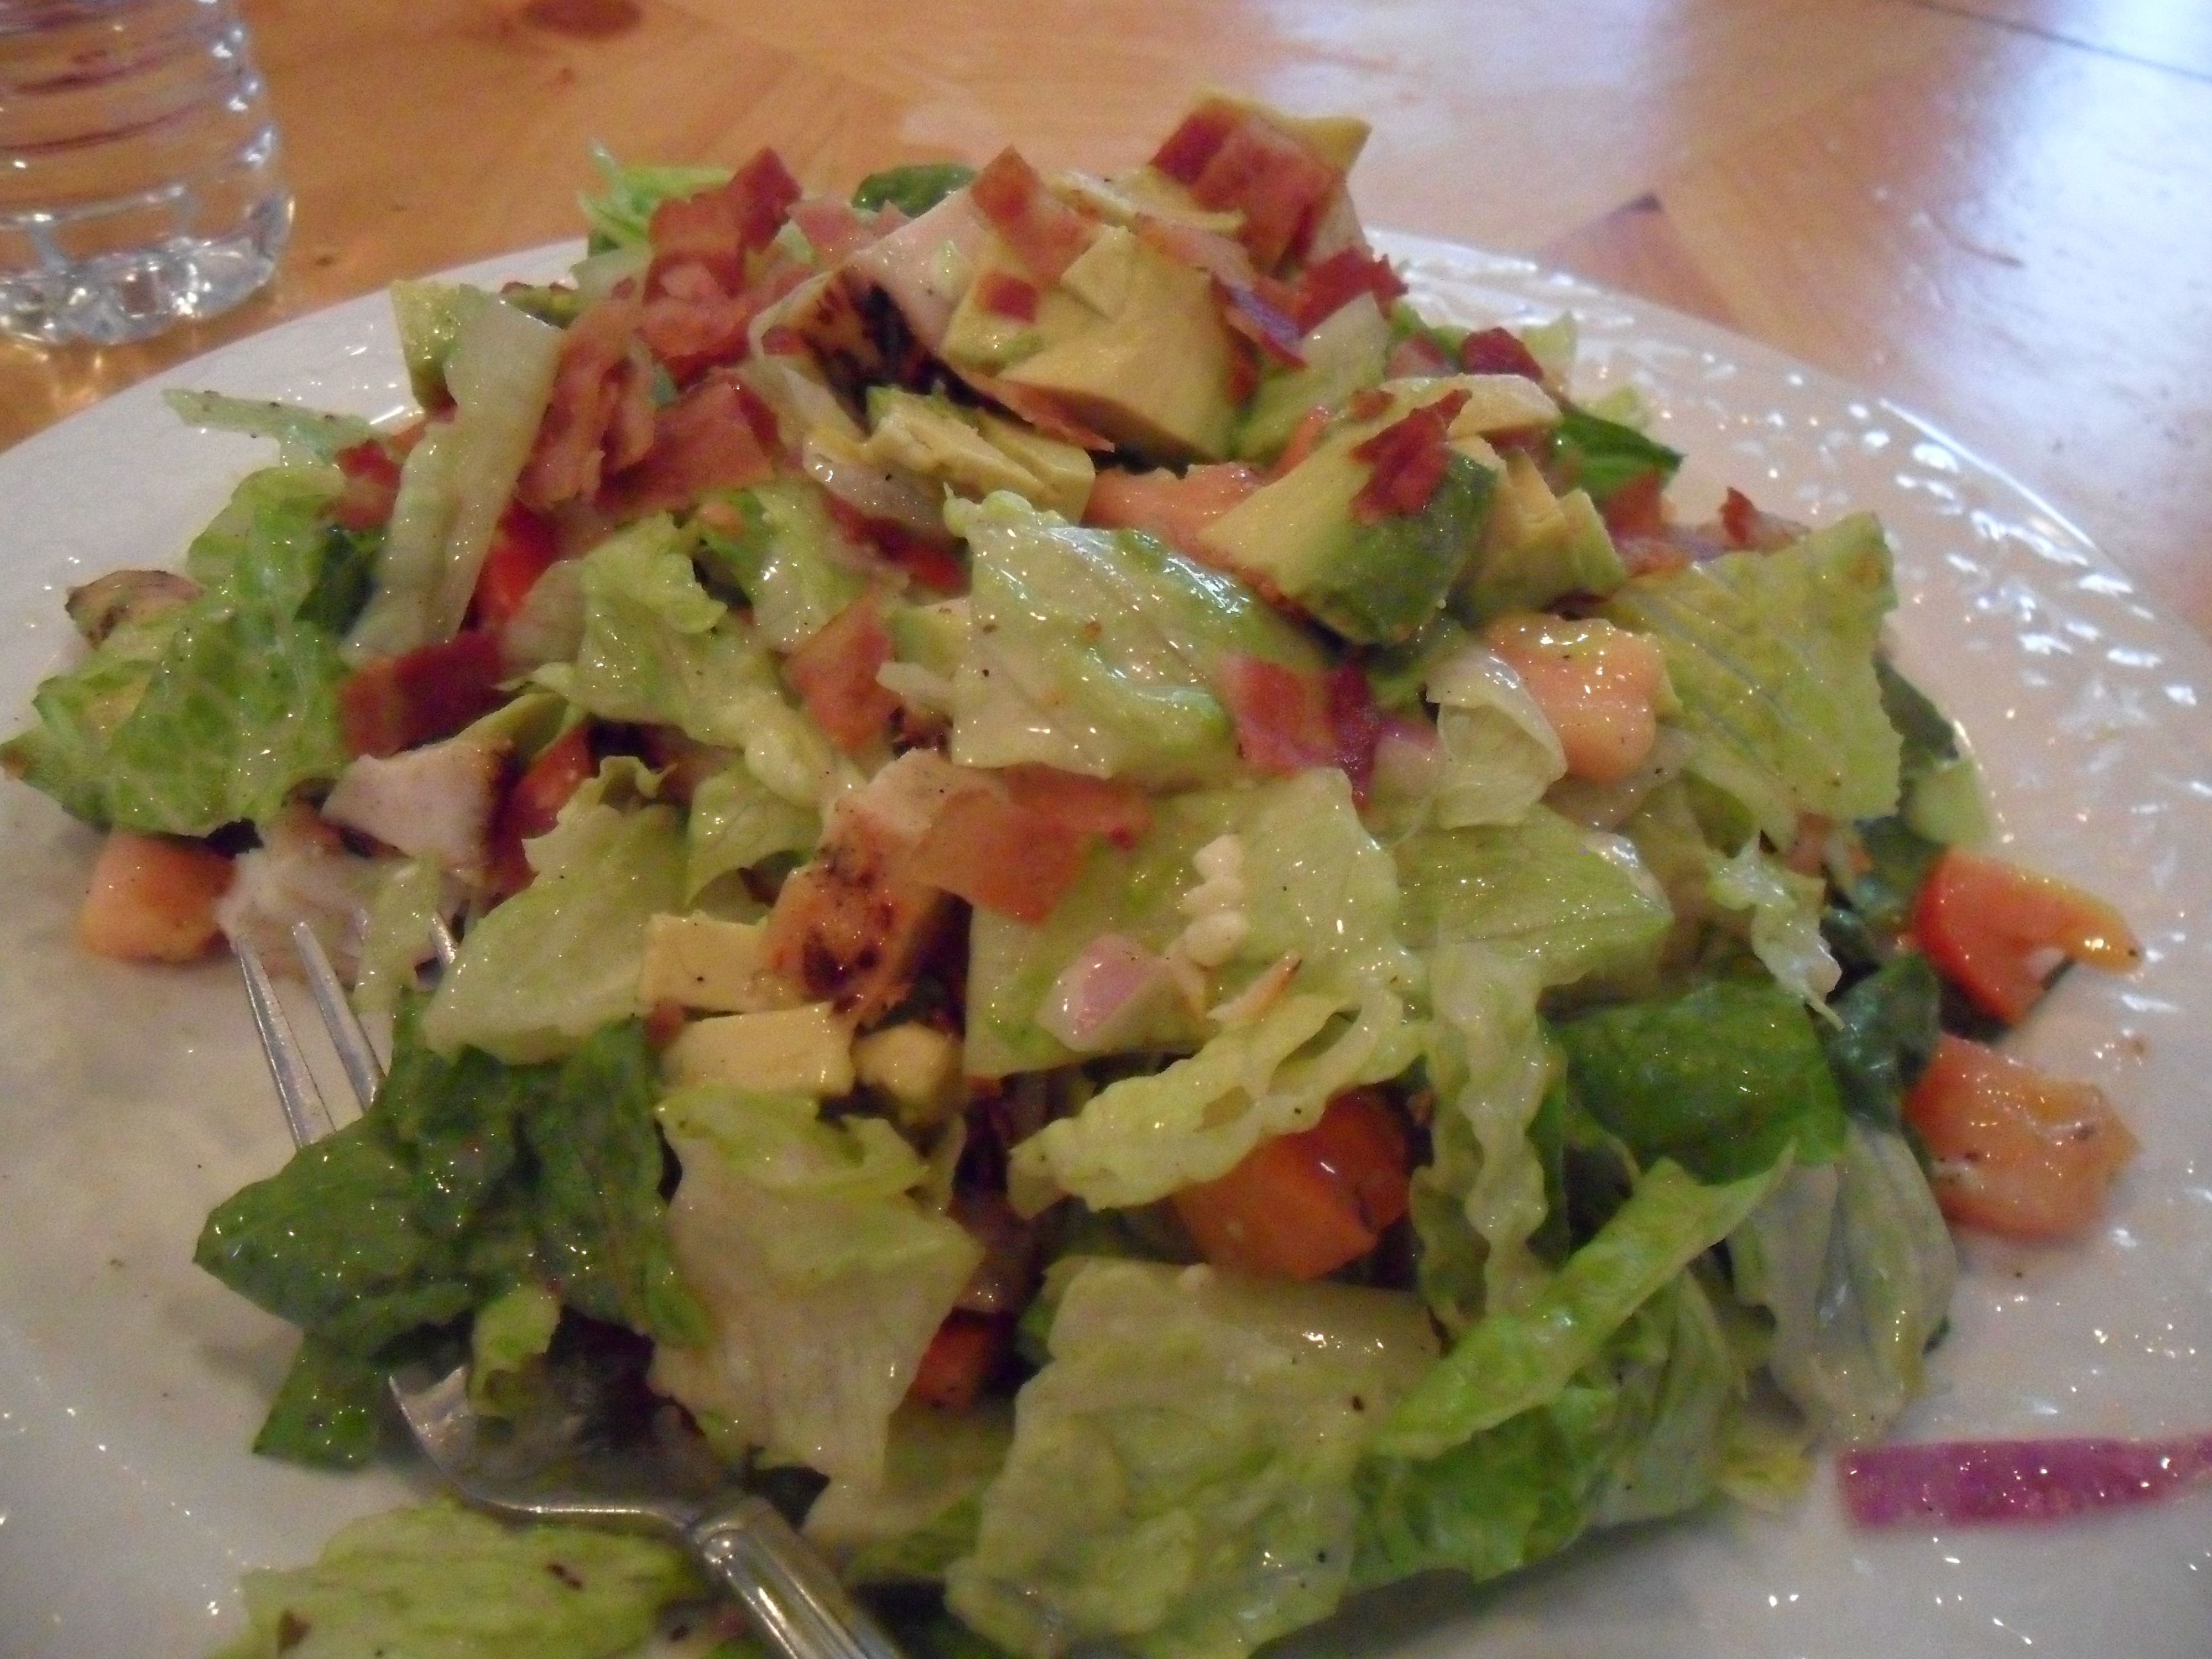 Copycat Biaggi\'s chopped chicken salad | Recipes to try | Pinterest ...